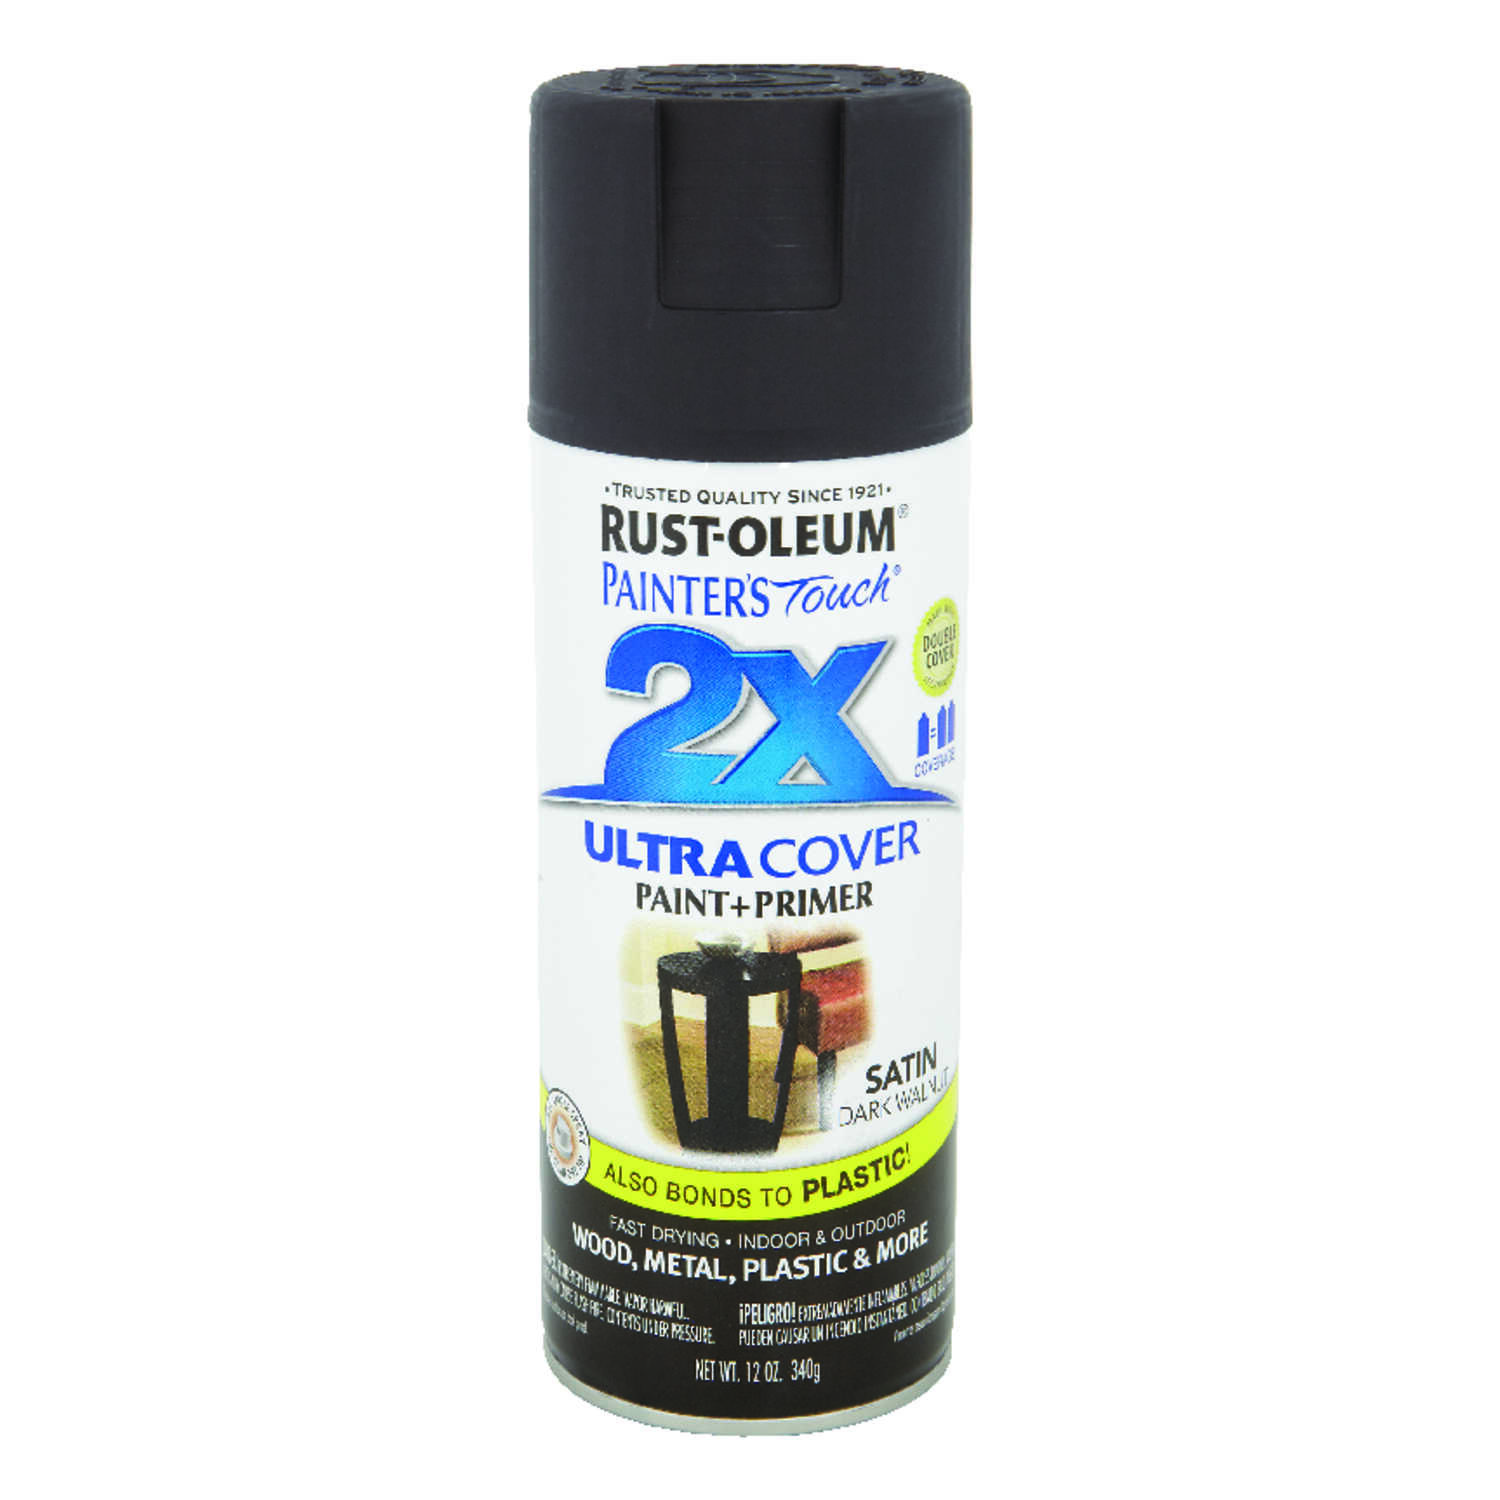 Rust-Oleum  Painter's Touch Ultra Cover  Satin  Dark Walnut  12 oz. Spray Paint